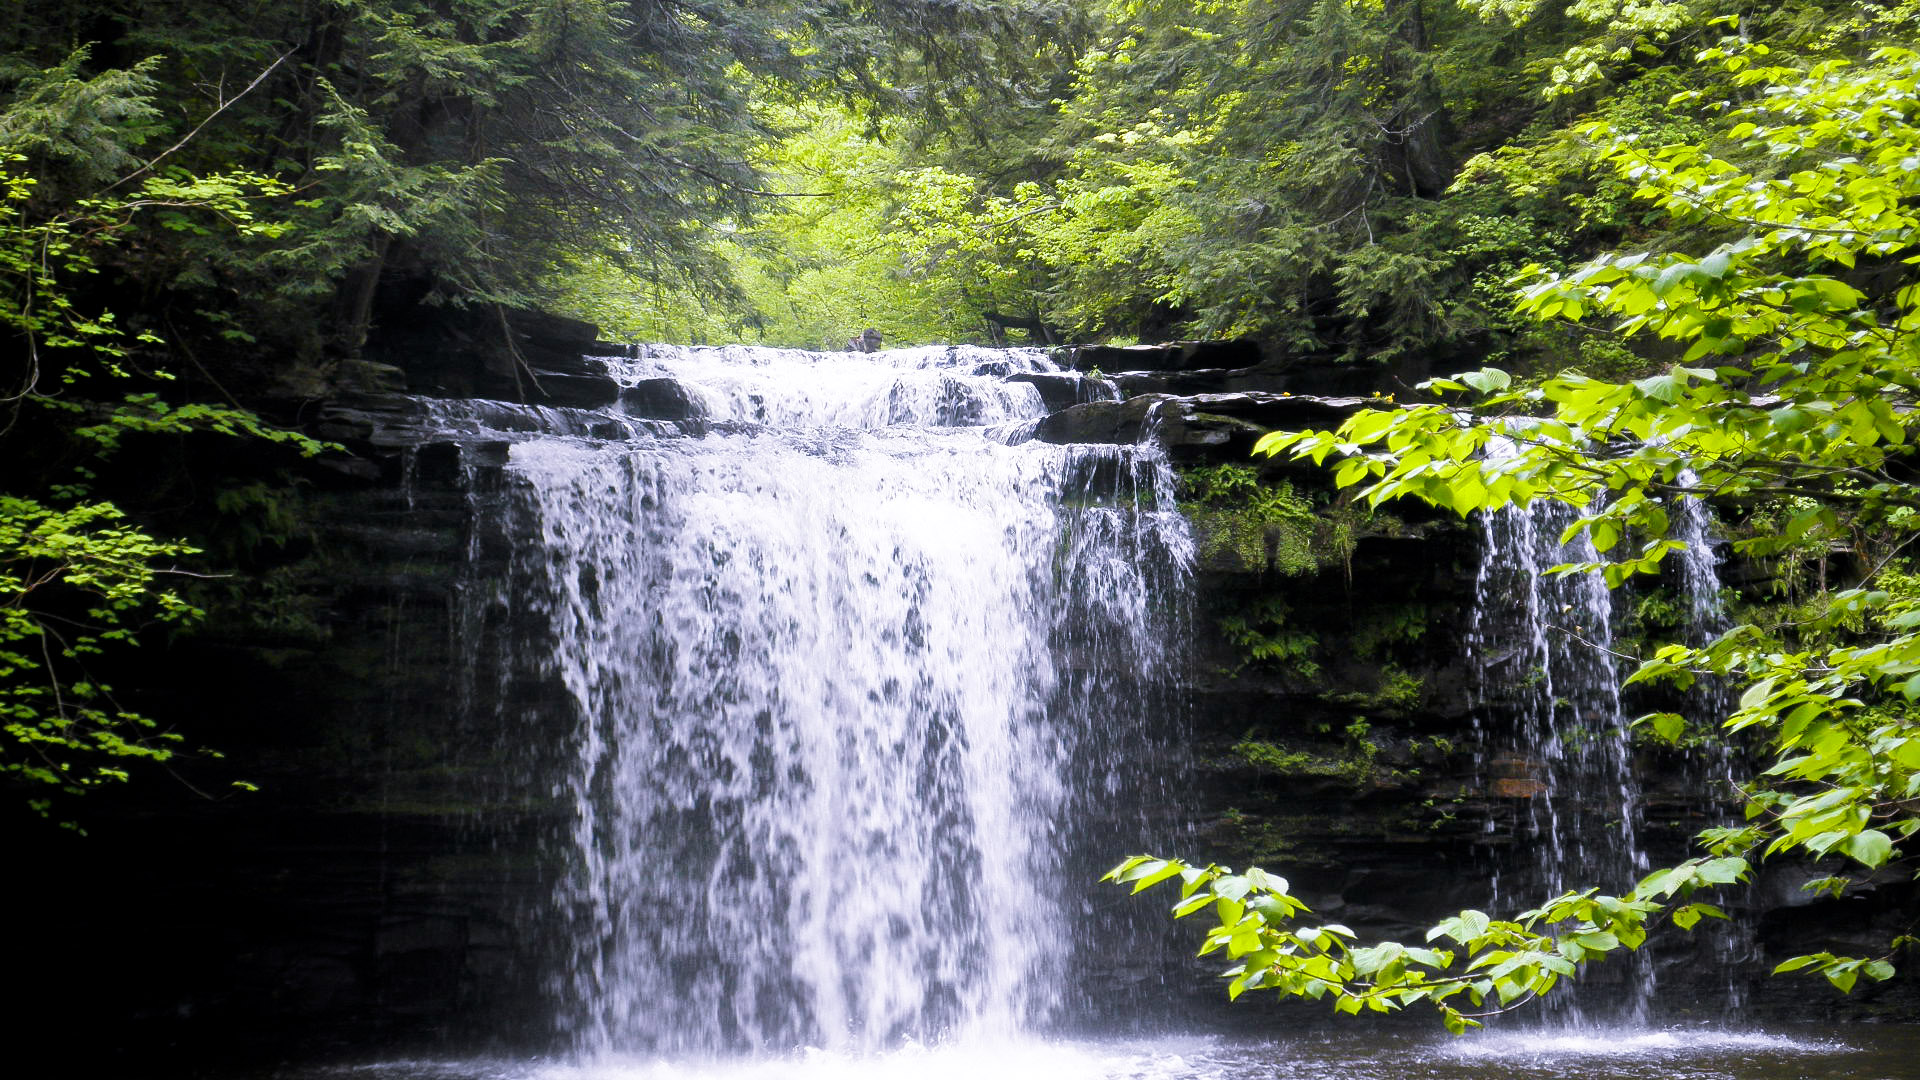 File:Christman Sanctuary, Main Waterfall 2.jpg - Wikipedia